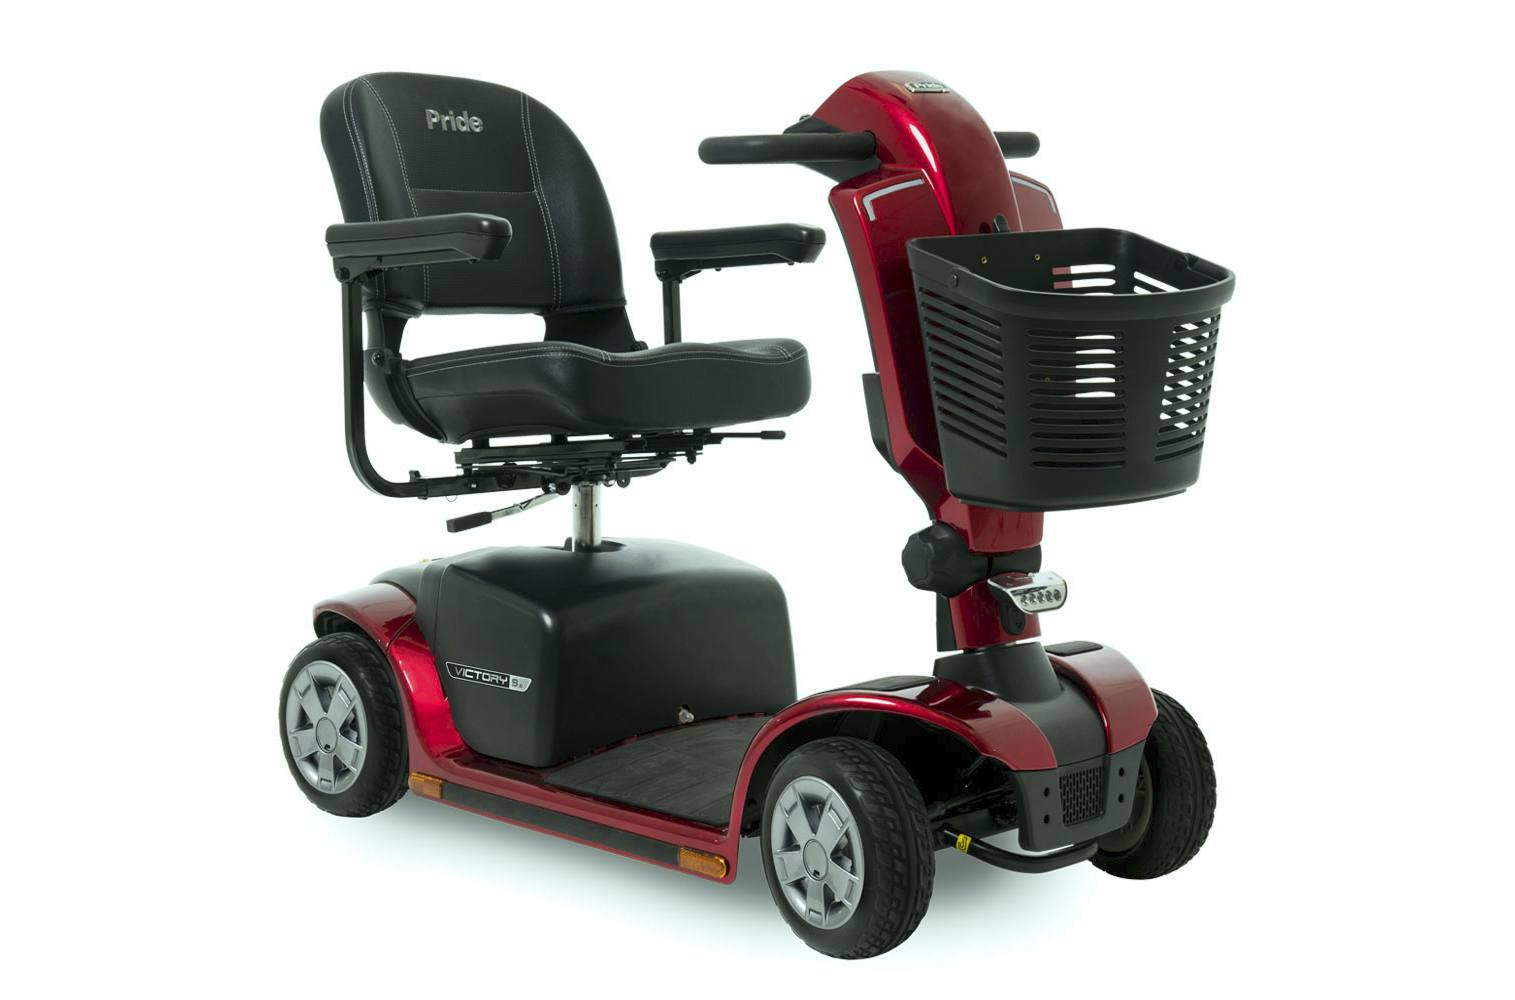 Victory 9 2 0 4 Wheel Scooter For Sale Advanced Home Care 800